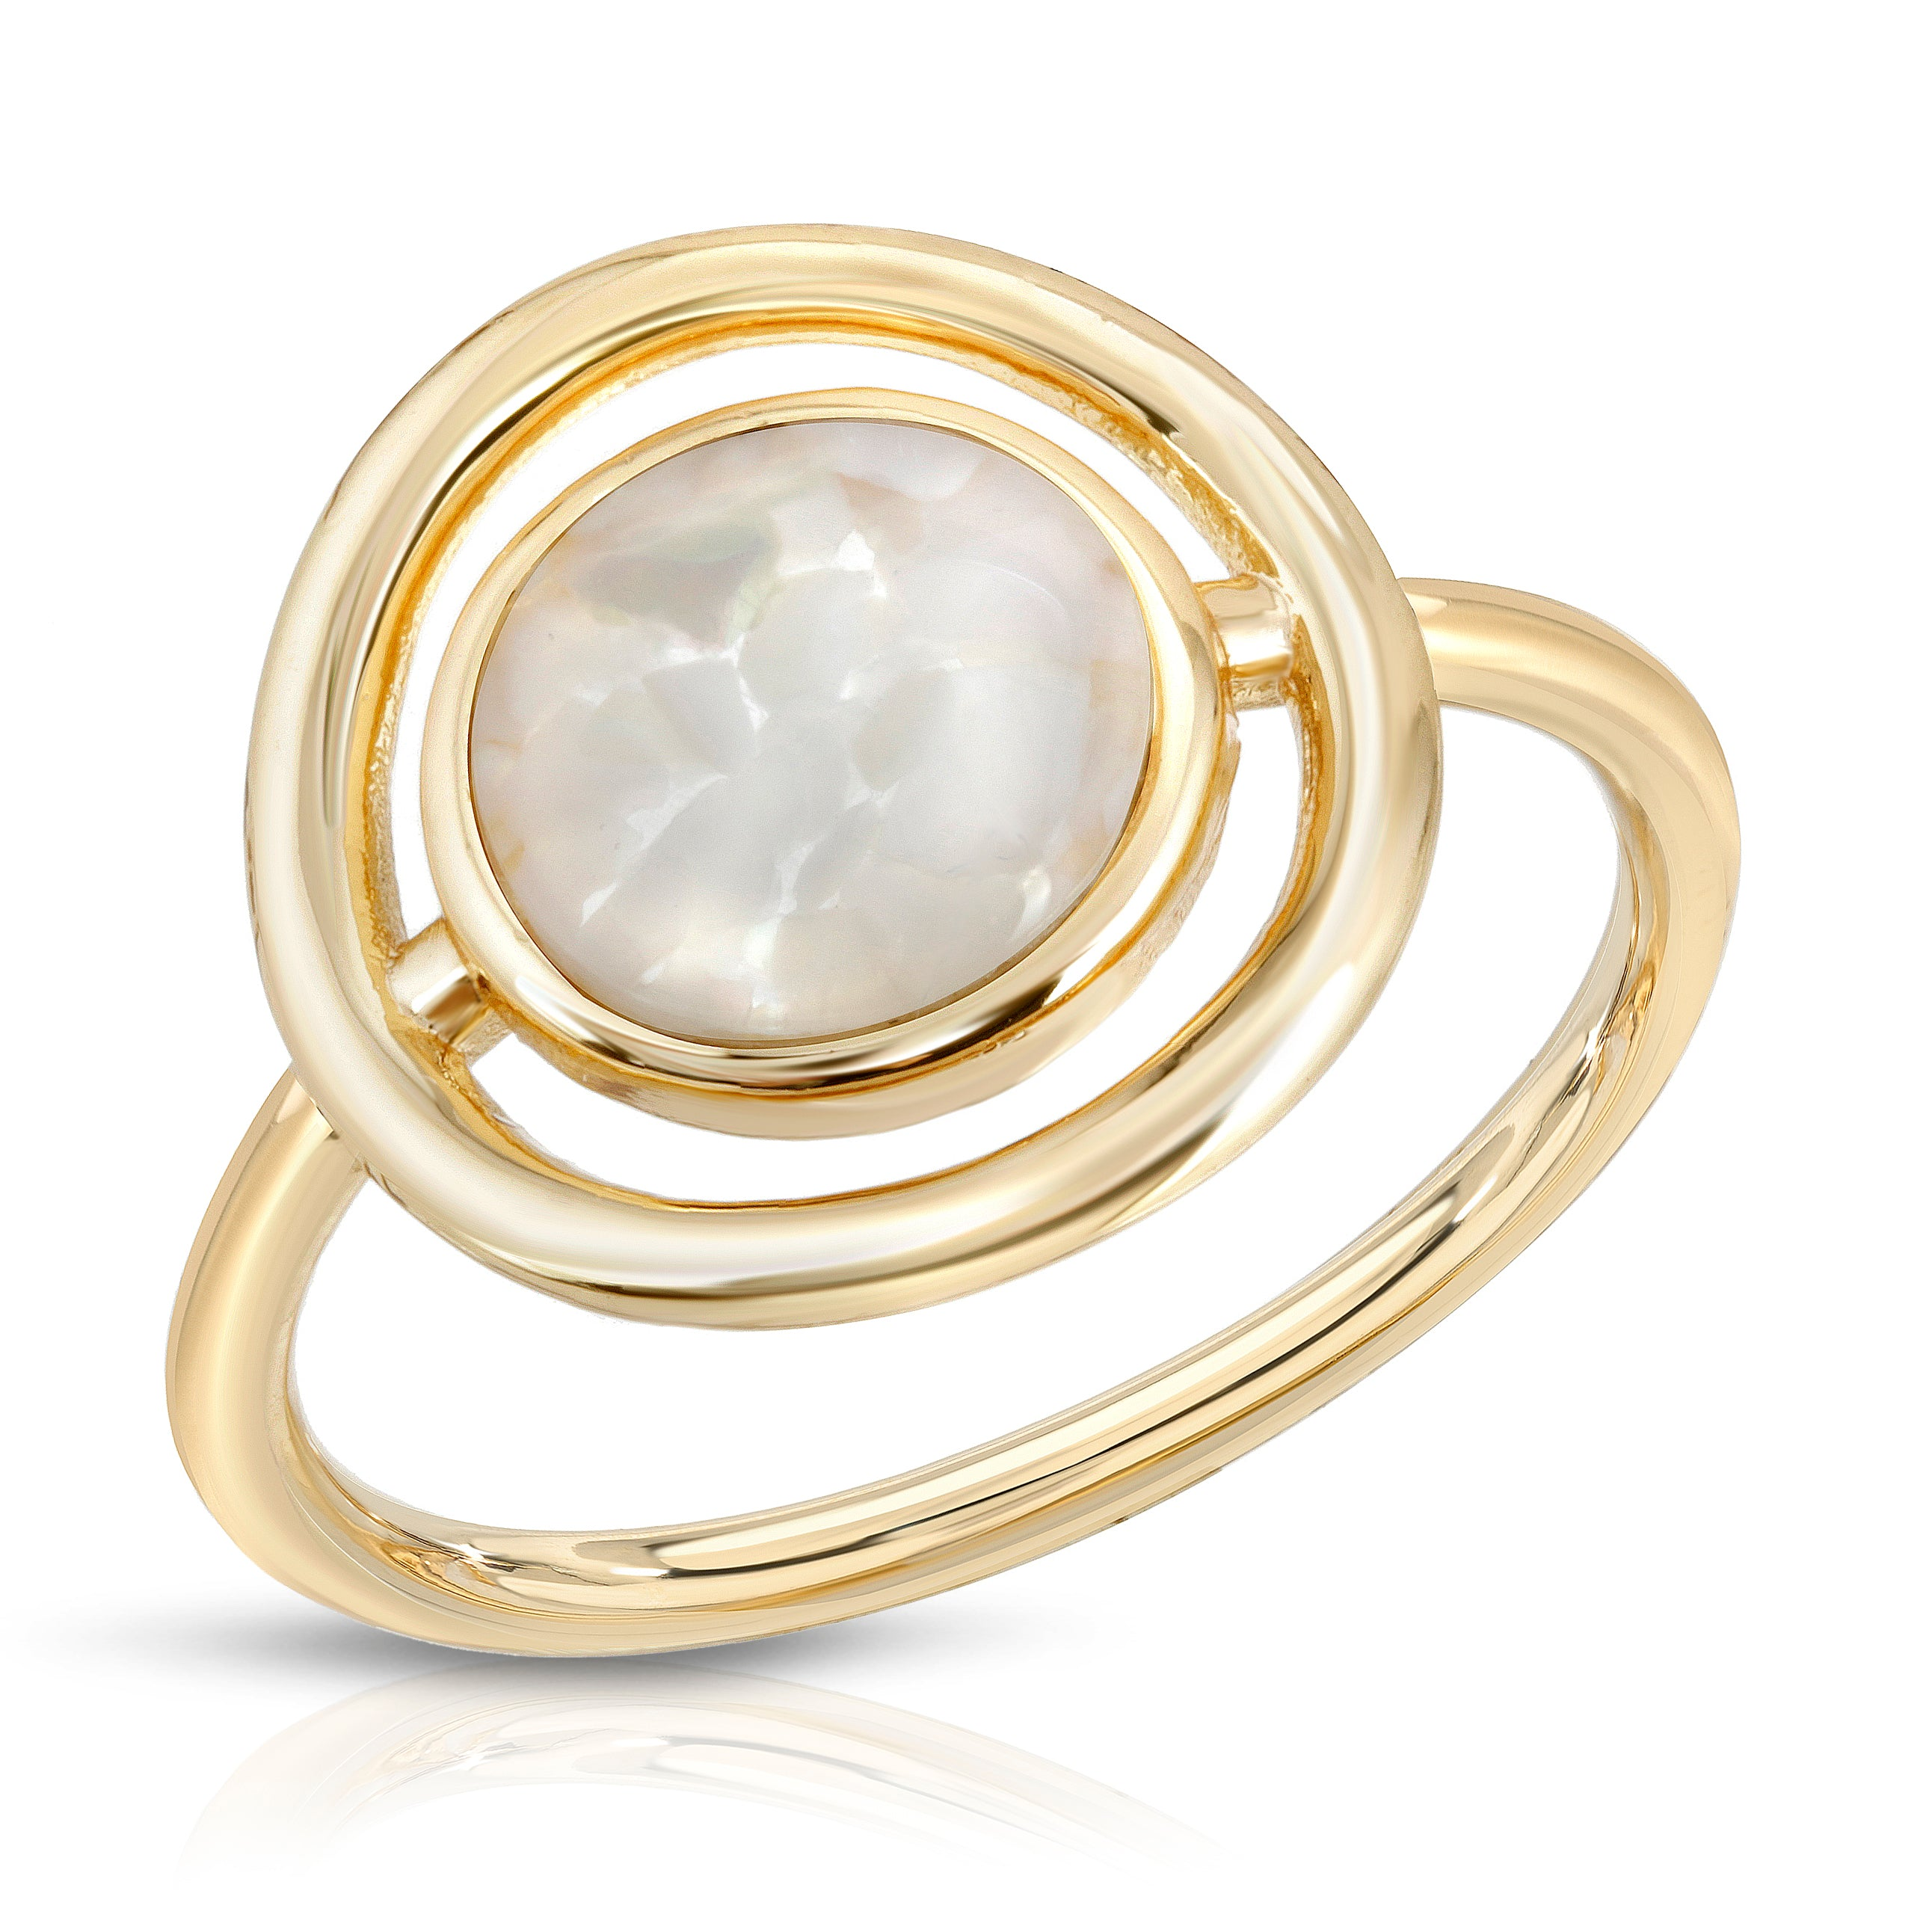 Eclipse Ring- Cracked Mother of Pearl